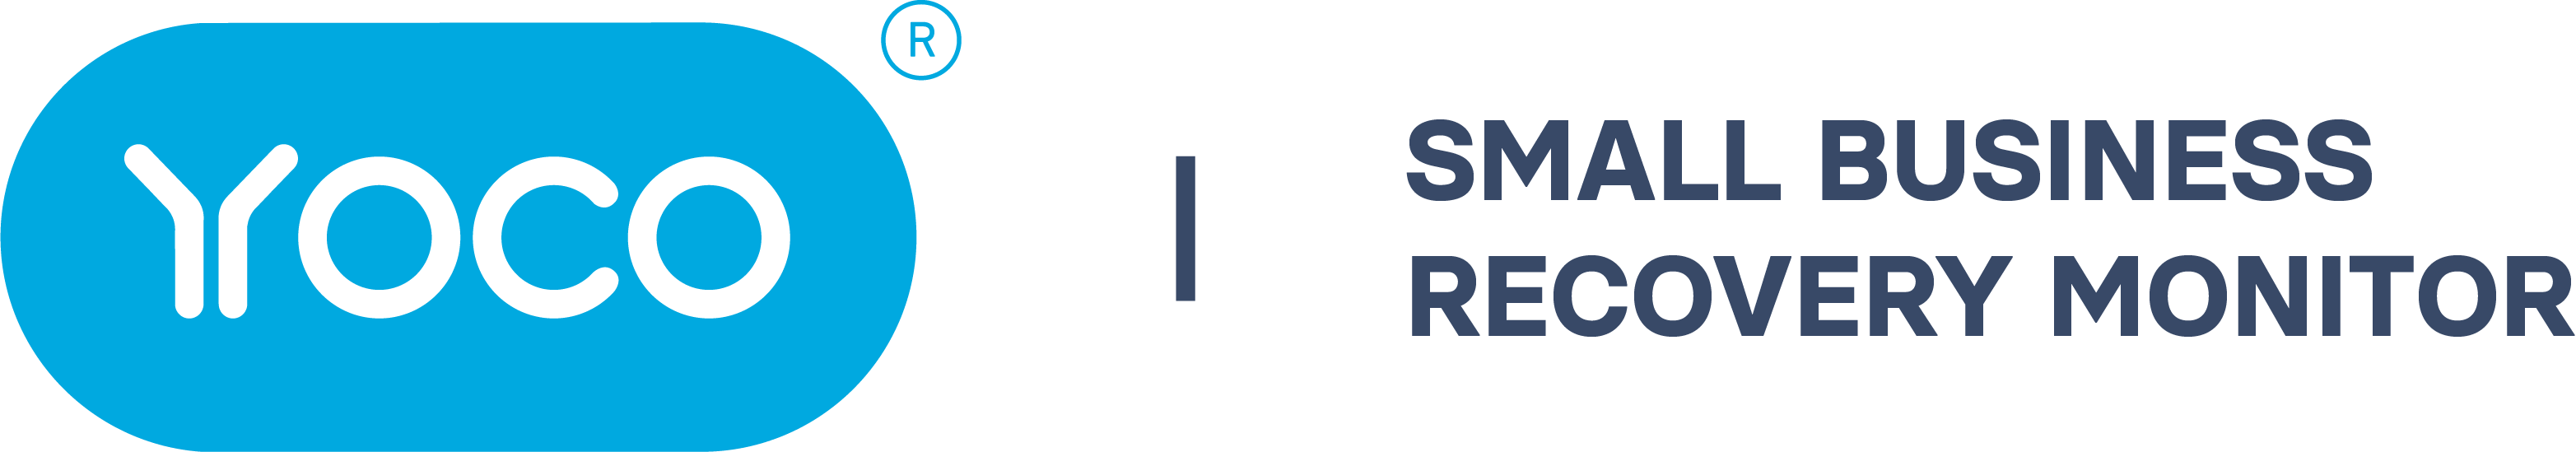 http://Yoco_small_business_recovery_logo@4x-8